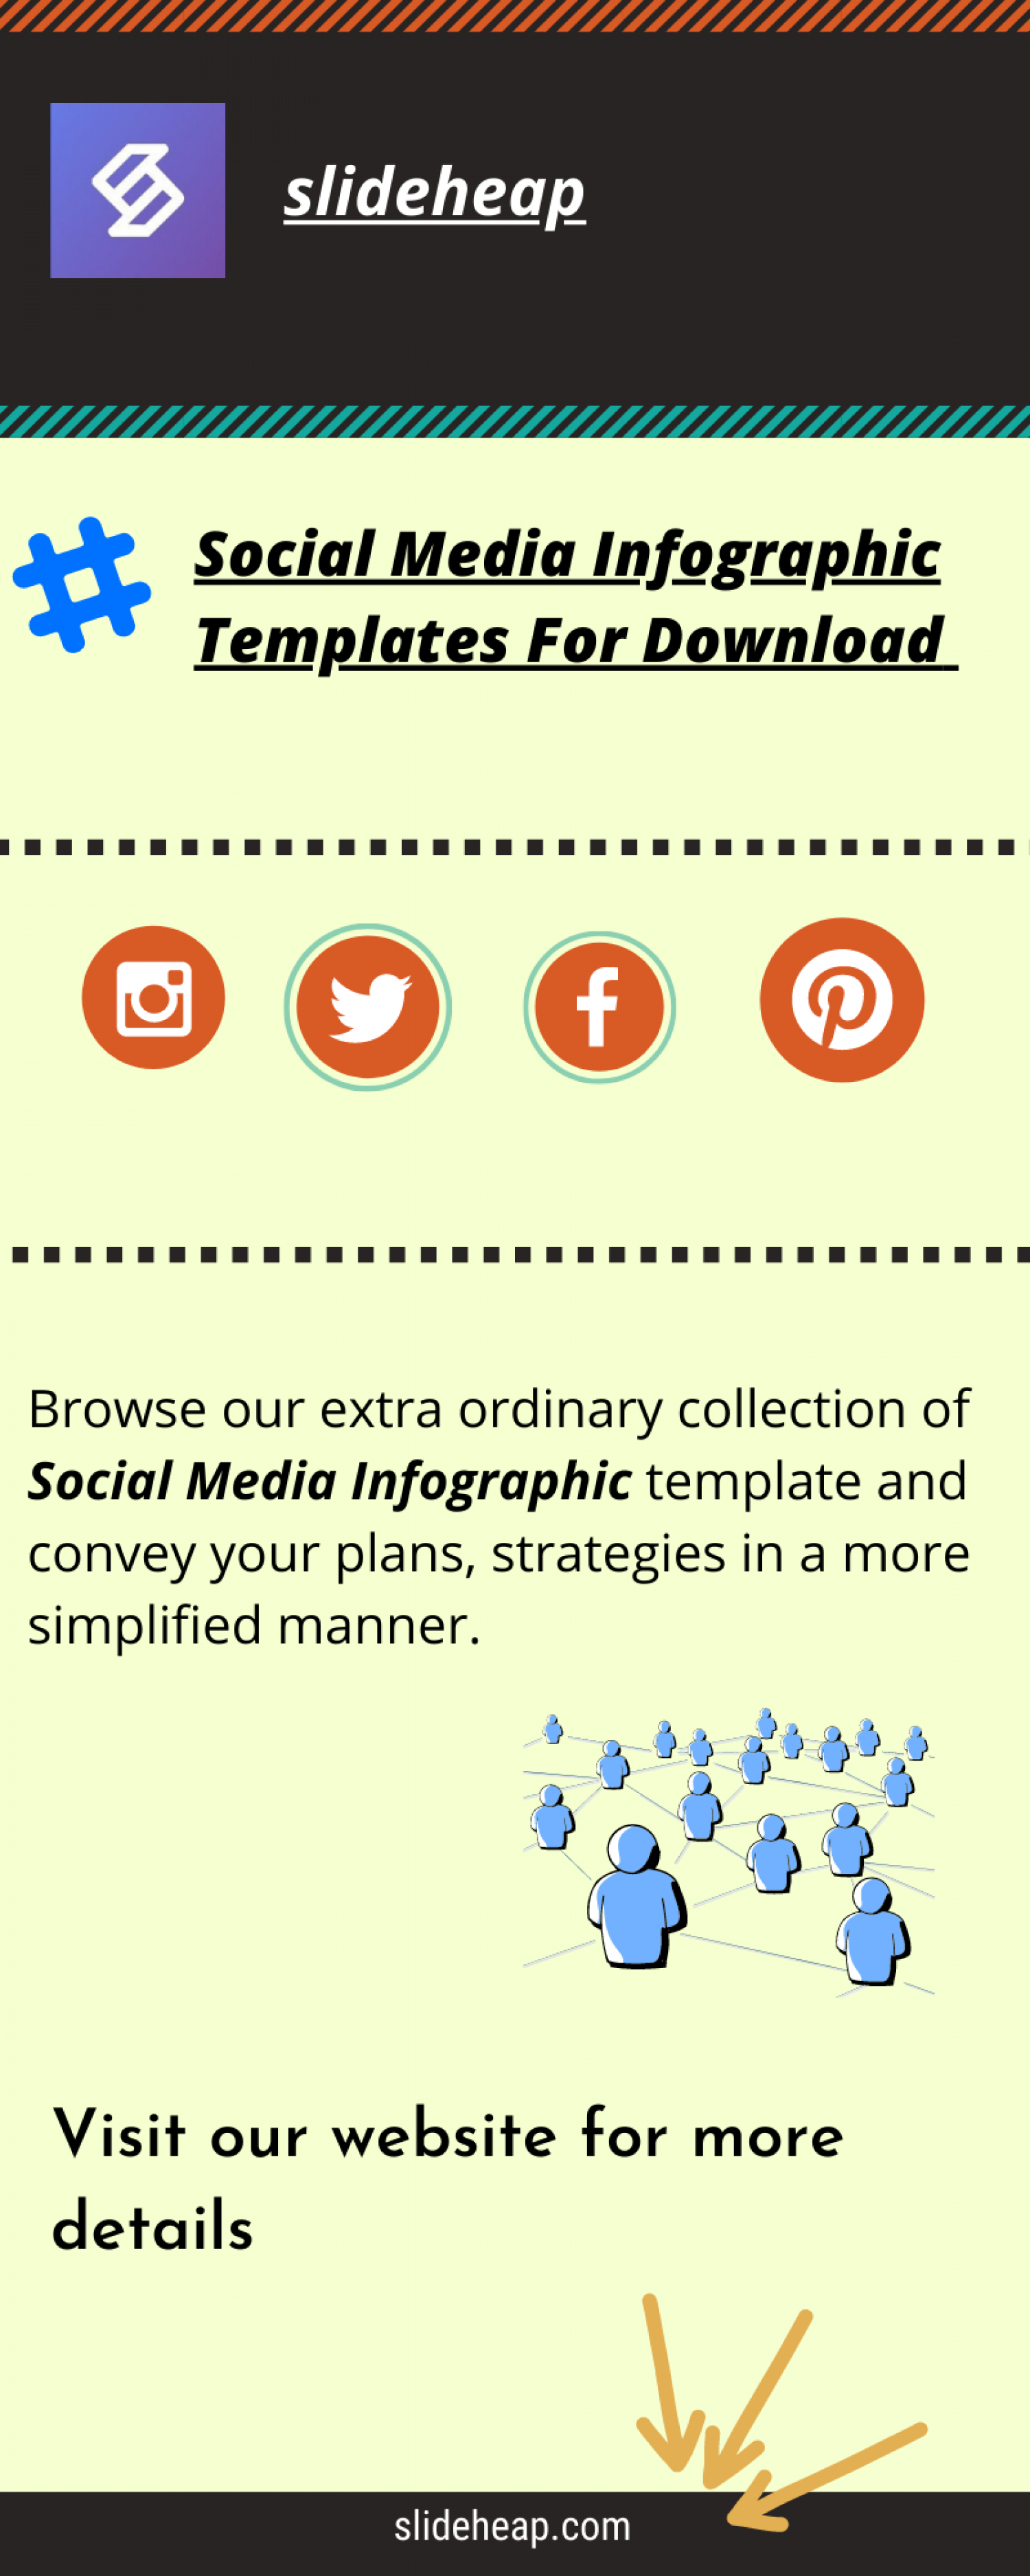 Social Media Infographic Templates For Download | Slideheap Infographic